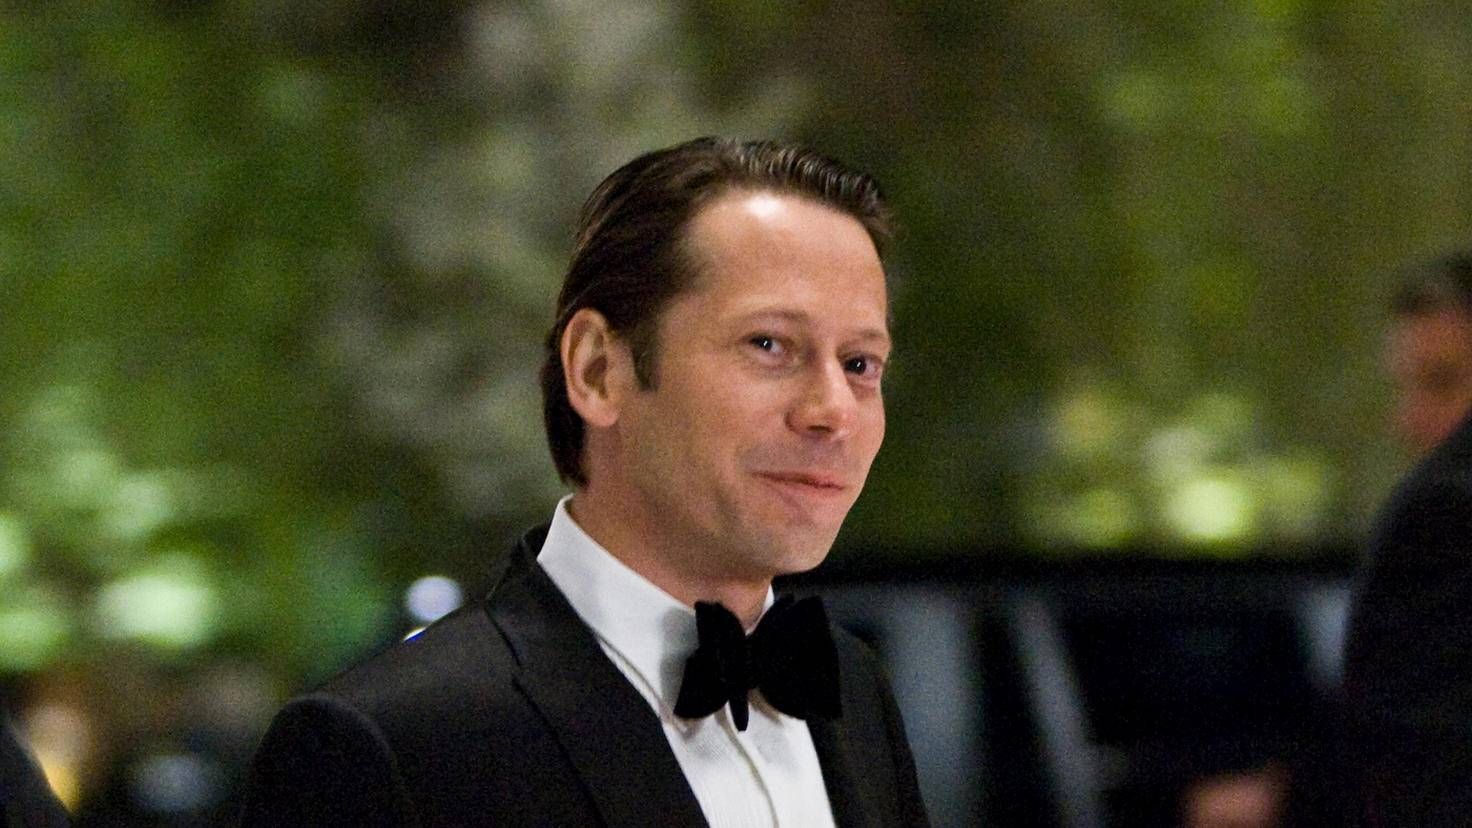 QUANTUM OF SOLACE Dominic Greene MATHIEU AMALRIC